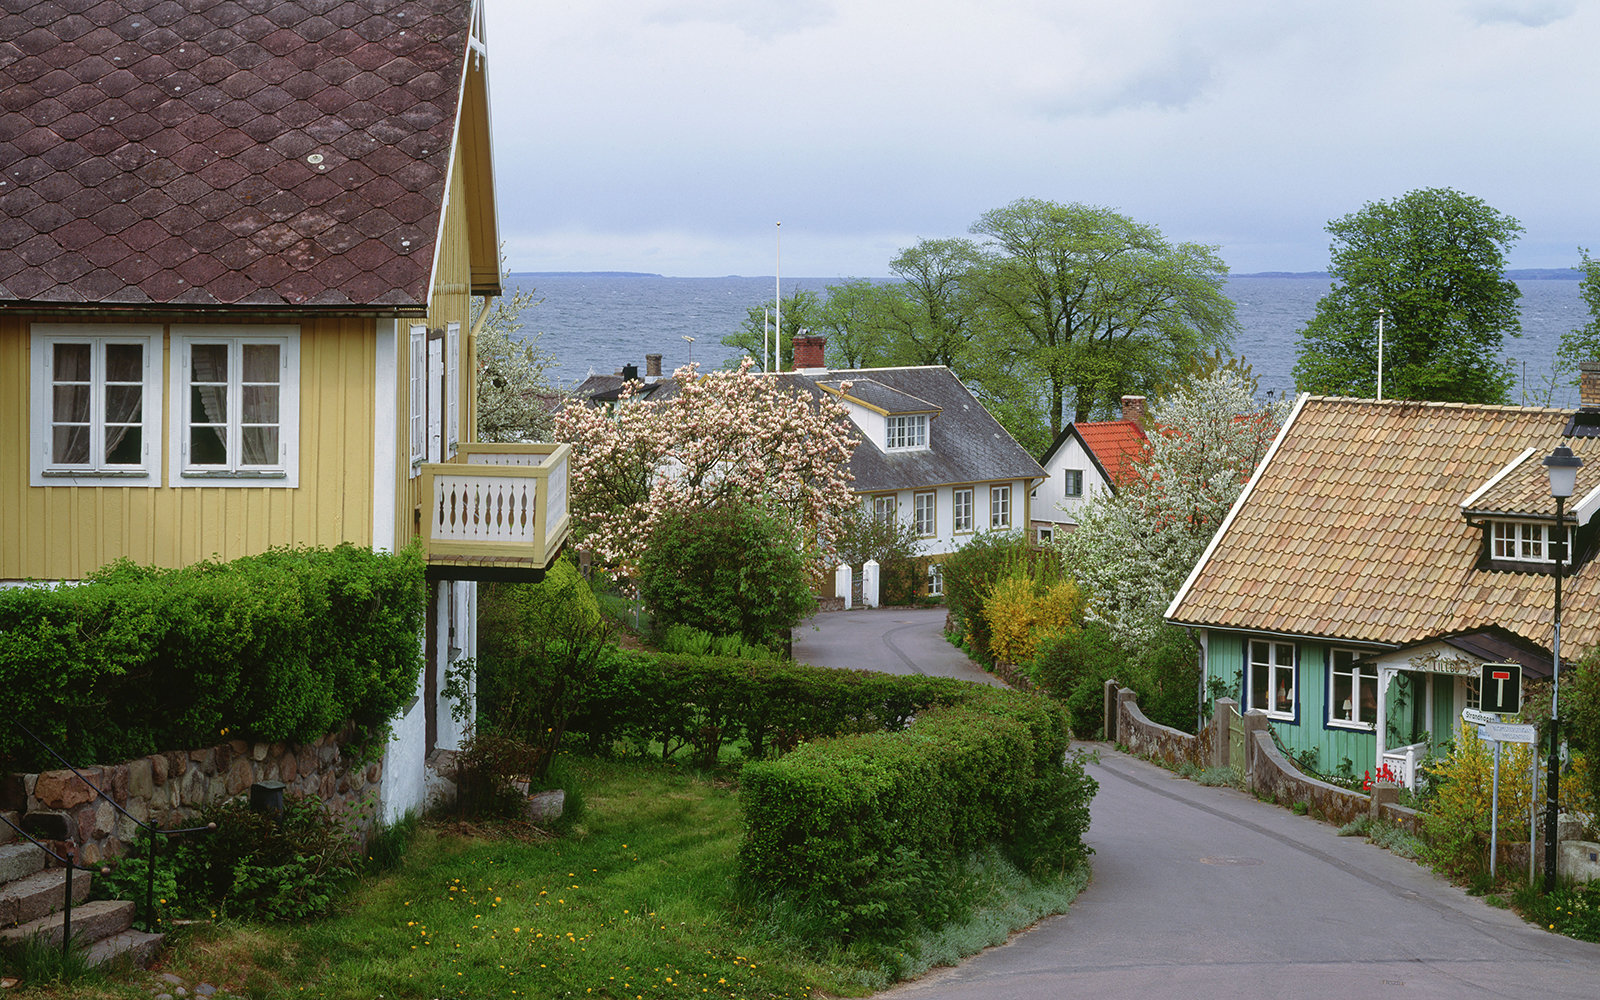 small European town in Arild, Sweden